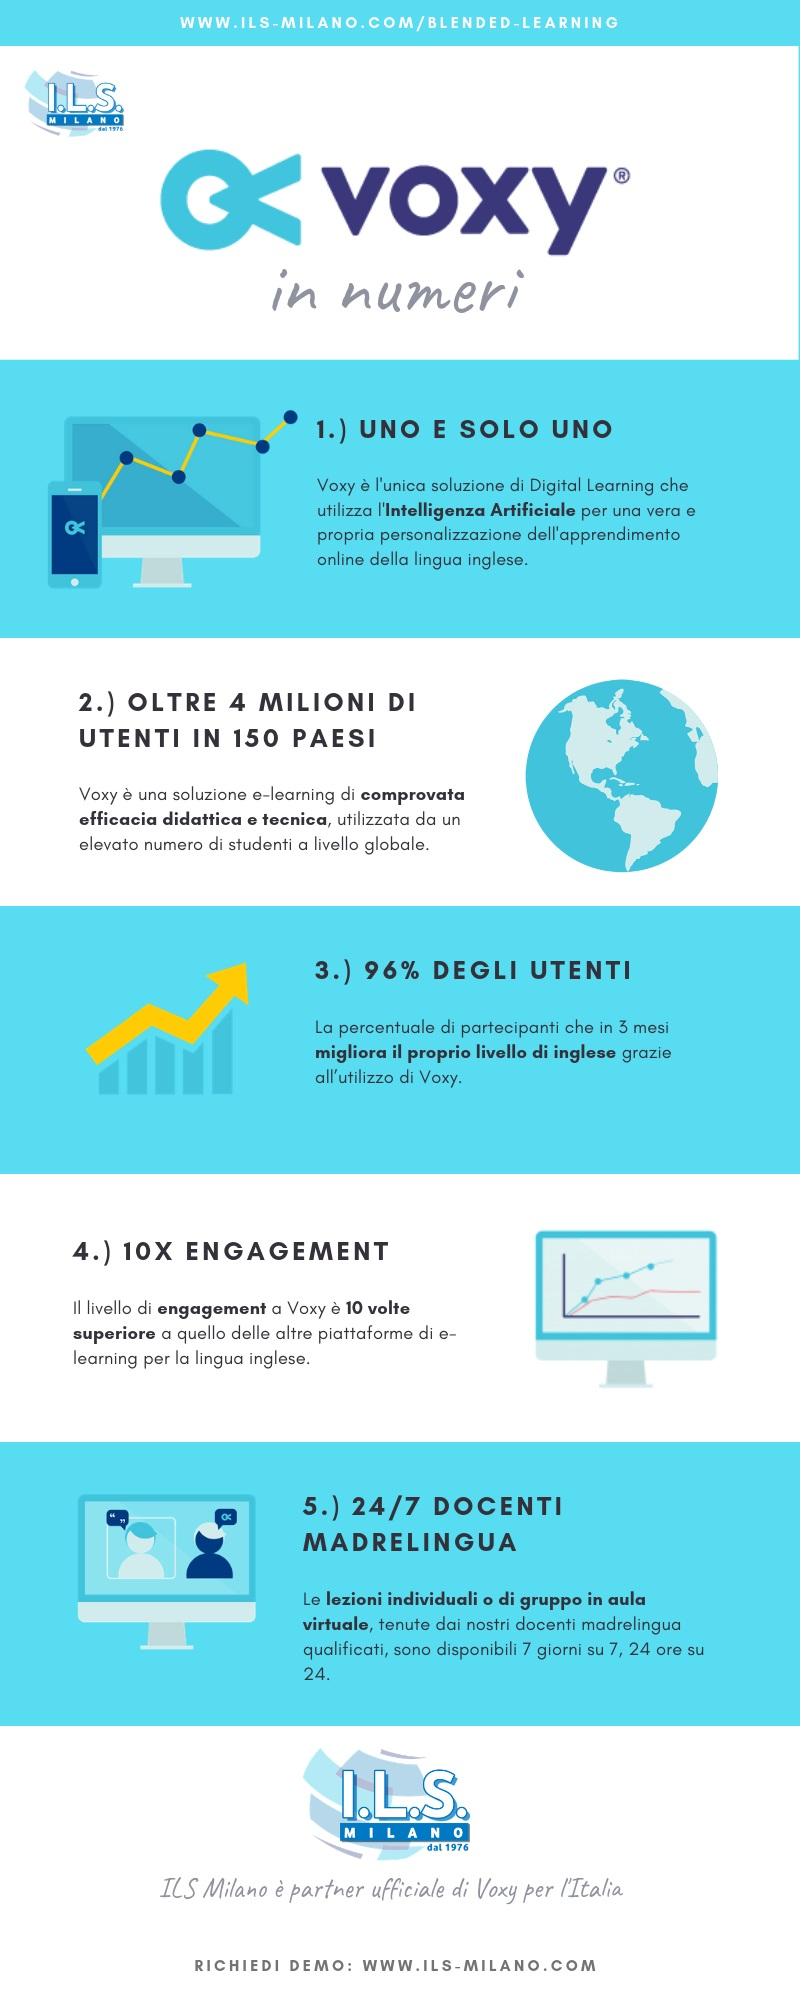 Voxy ils milano corso inglese online intelligenza artificiale digital learning